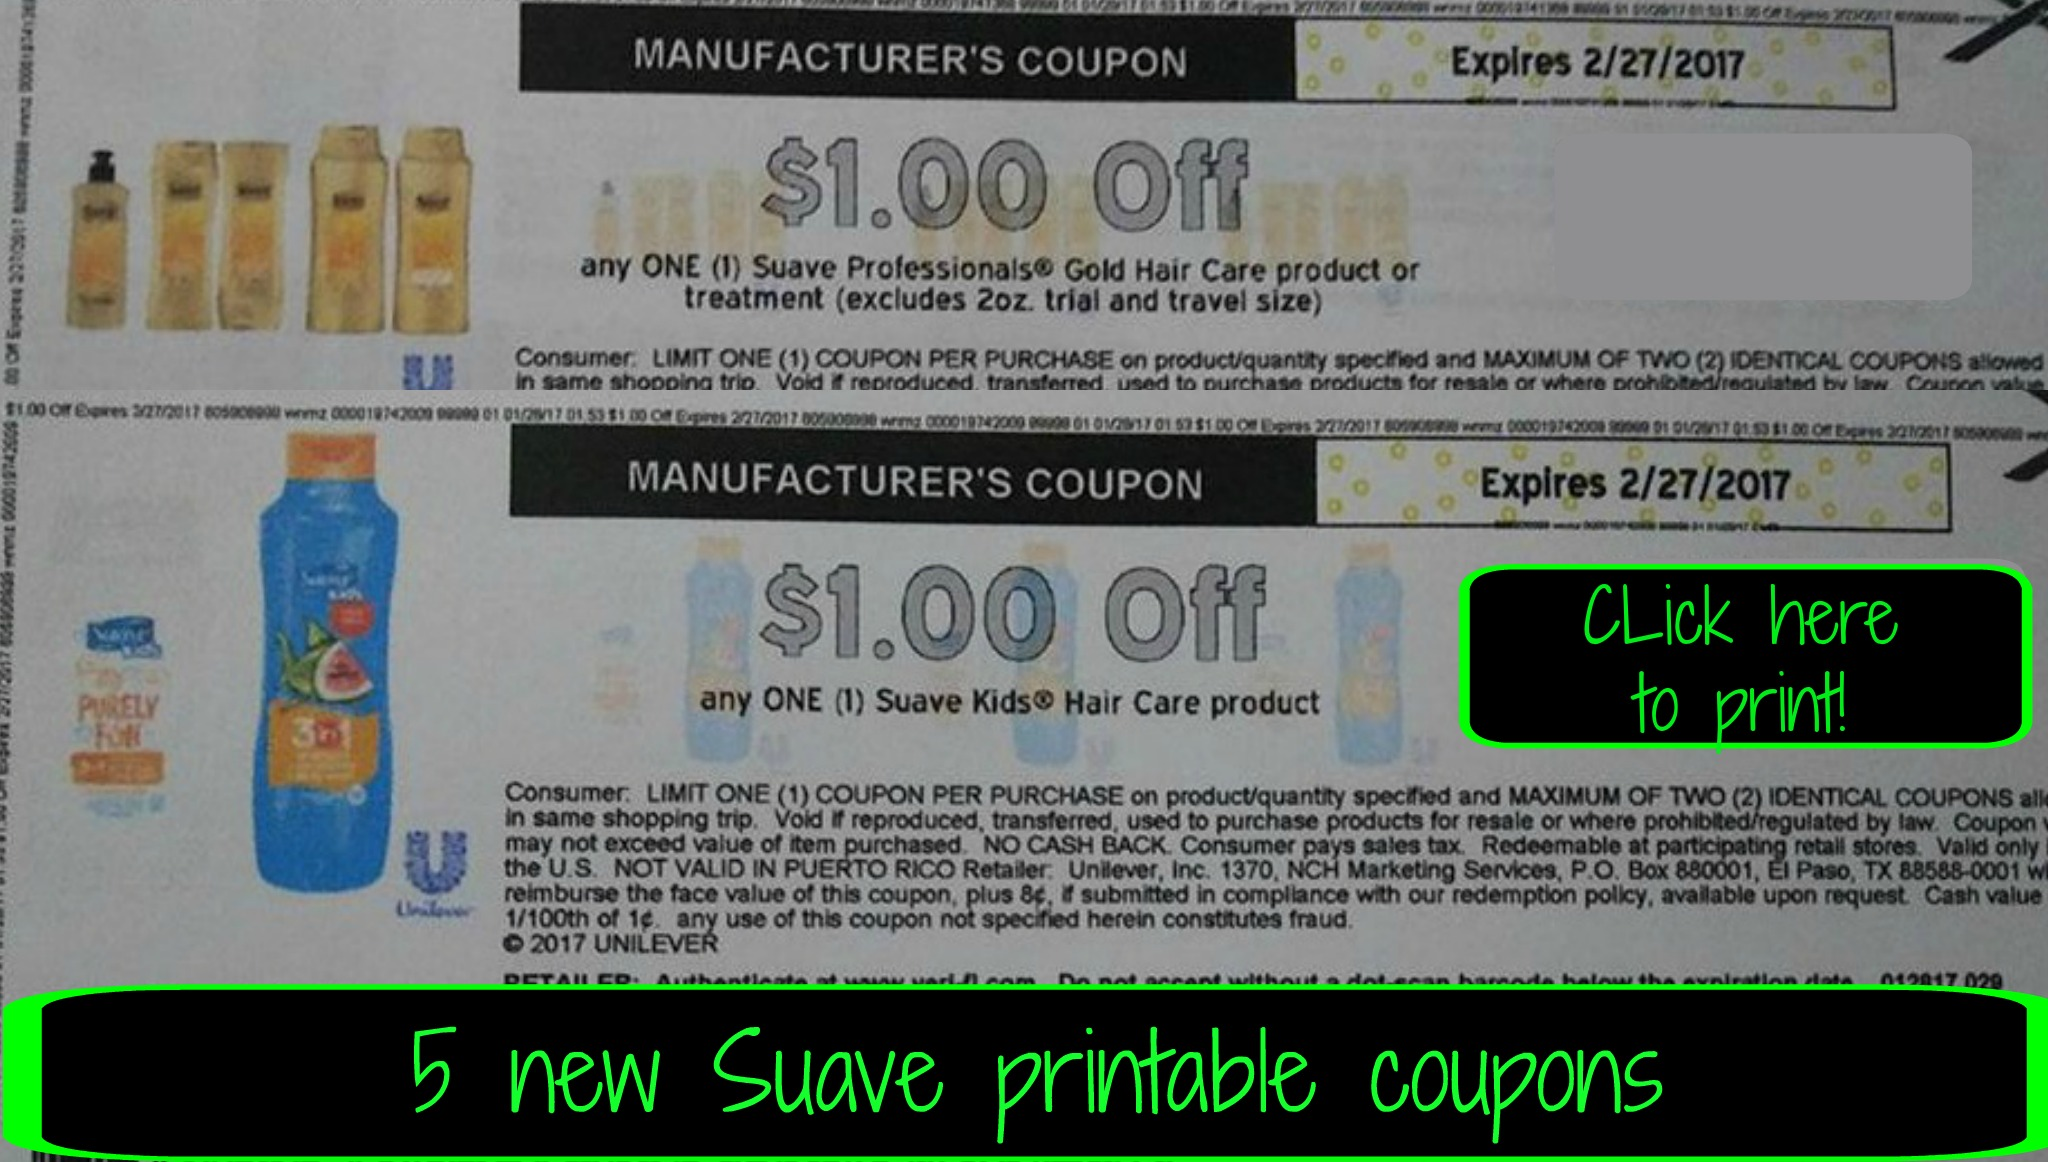 image about Printable Suave Coupons identify Simply click right here towards print ~ 5 fresh new Artful printable discount coupons